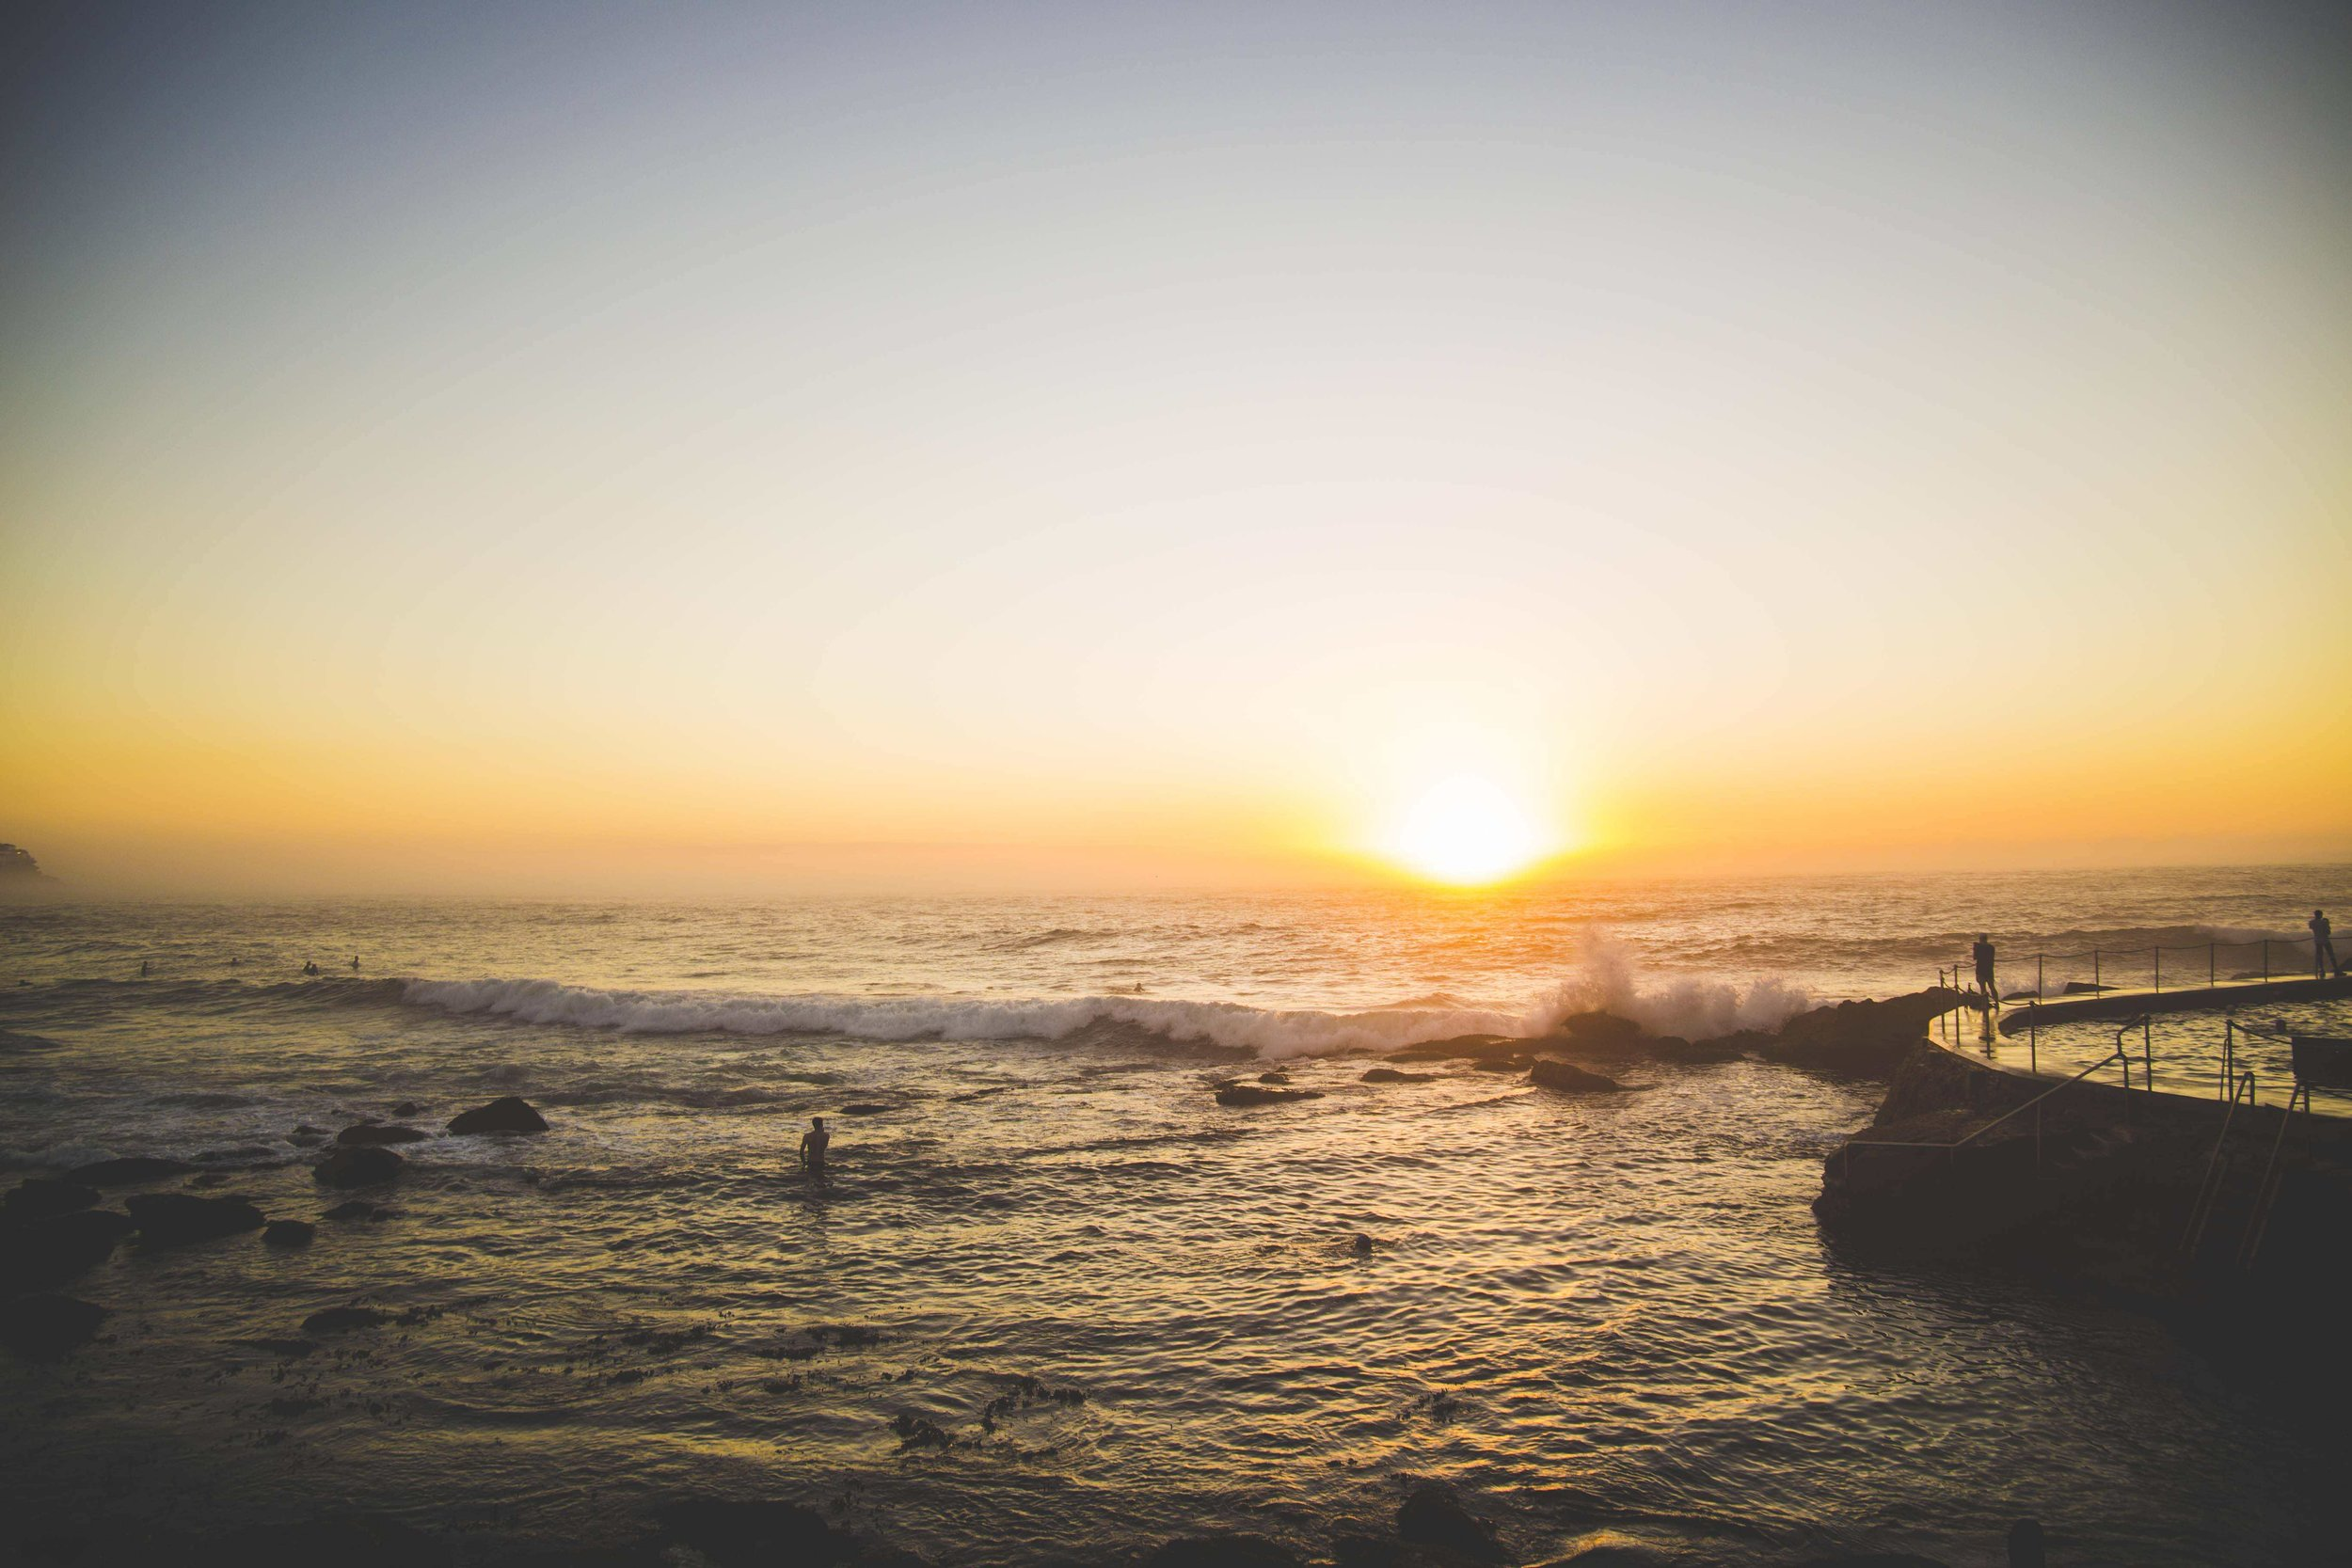 Sunrise on the ocean at Bronte Beach. Photo: Marine Raynard